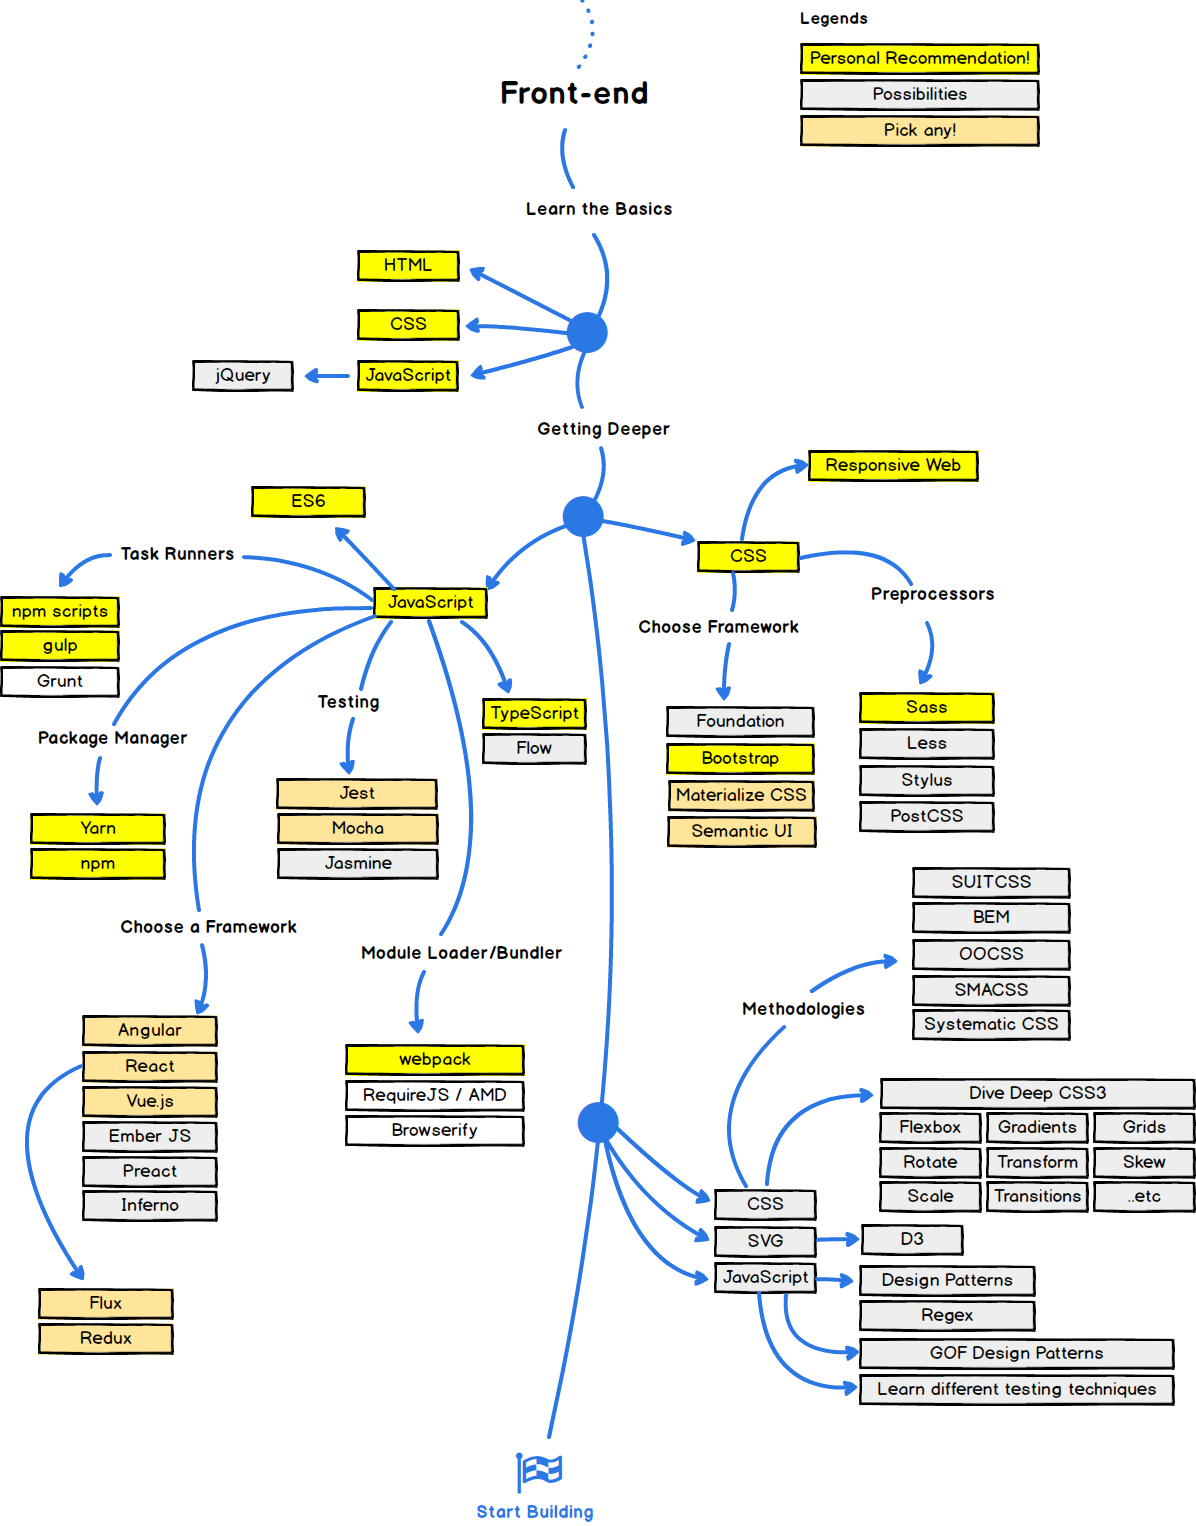 Why Im Switching From Angular To React And Redux In 2018 Universals Rear Axle Available Part Diagrams 10 Front Suspension Modern Web Development Is Challenging The Way We Develop Apps Are Now Different Than Before